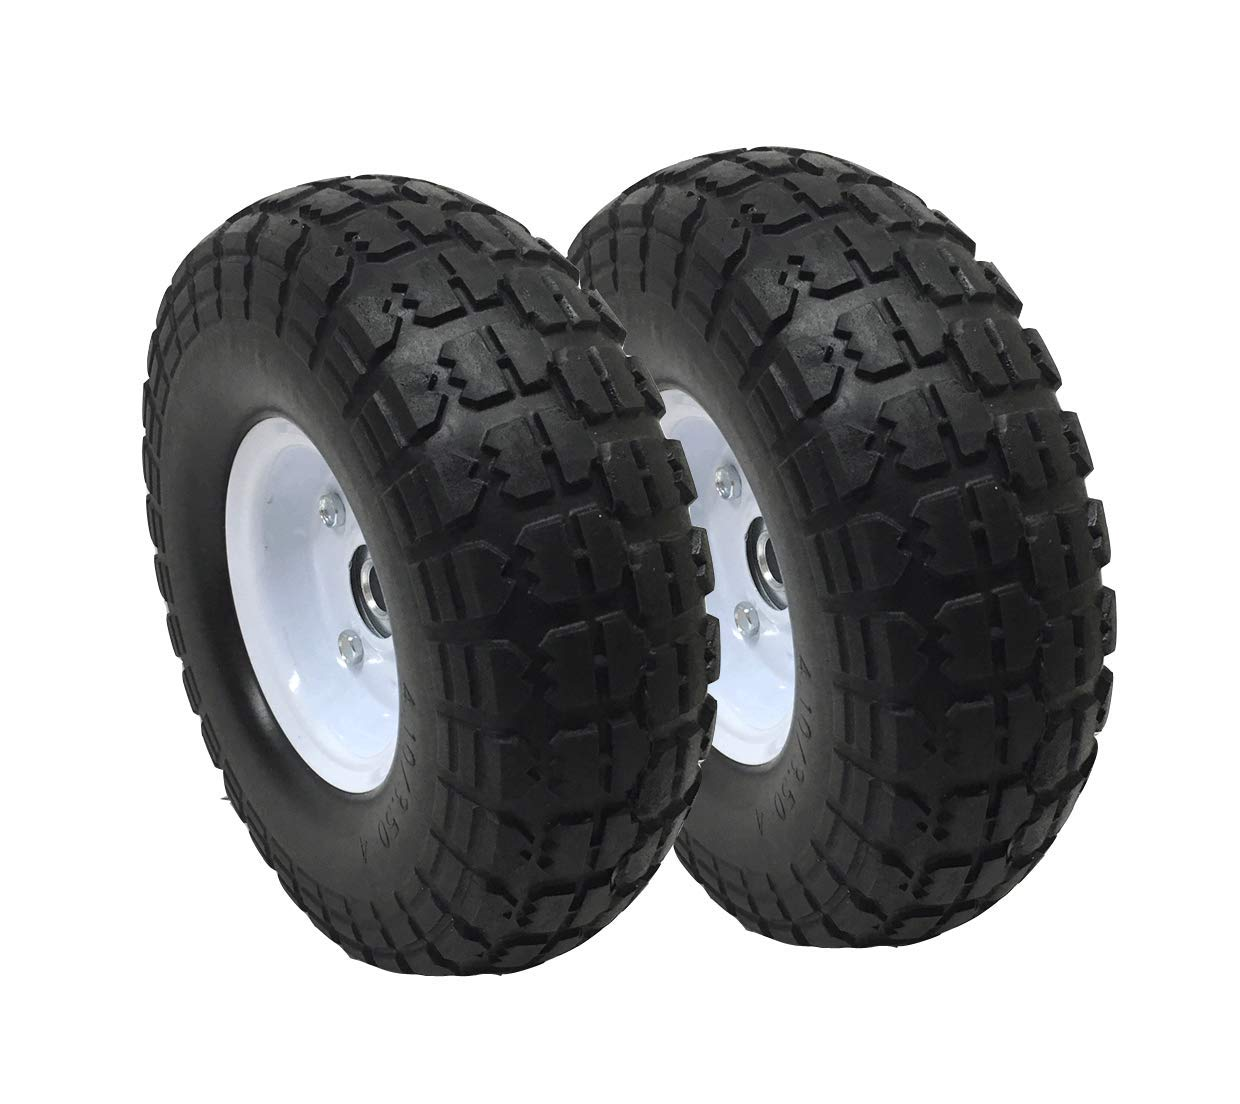 UI PRO TOOLS 2-Pack 4.10//3.50-4 Flat Free Rubber Tire Hand Truck//All Purpose Utility Tires on Wheels 5//8 Bearing Hole